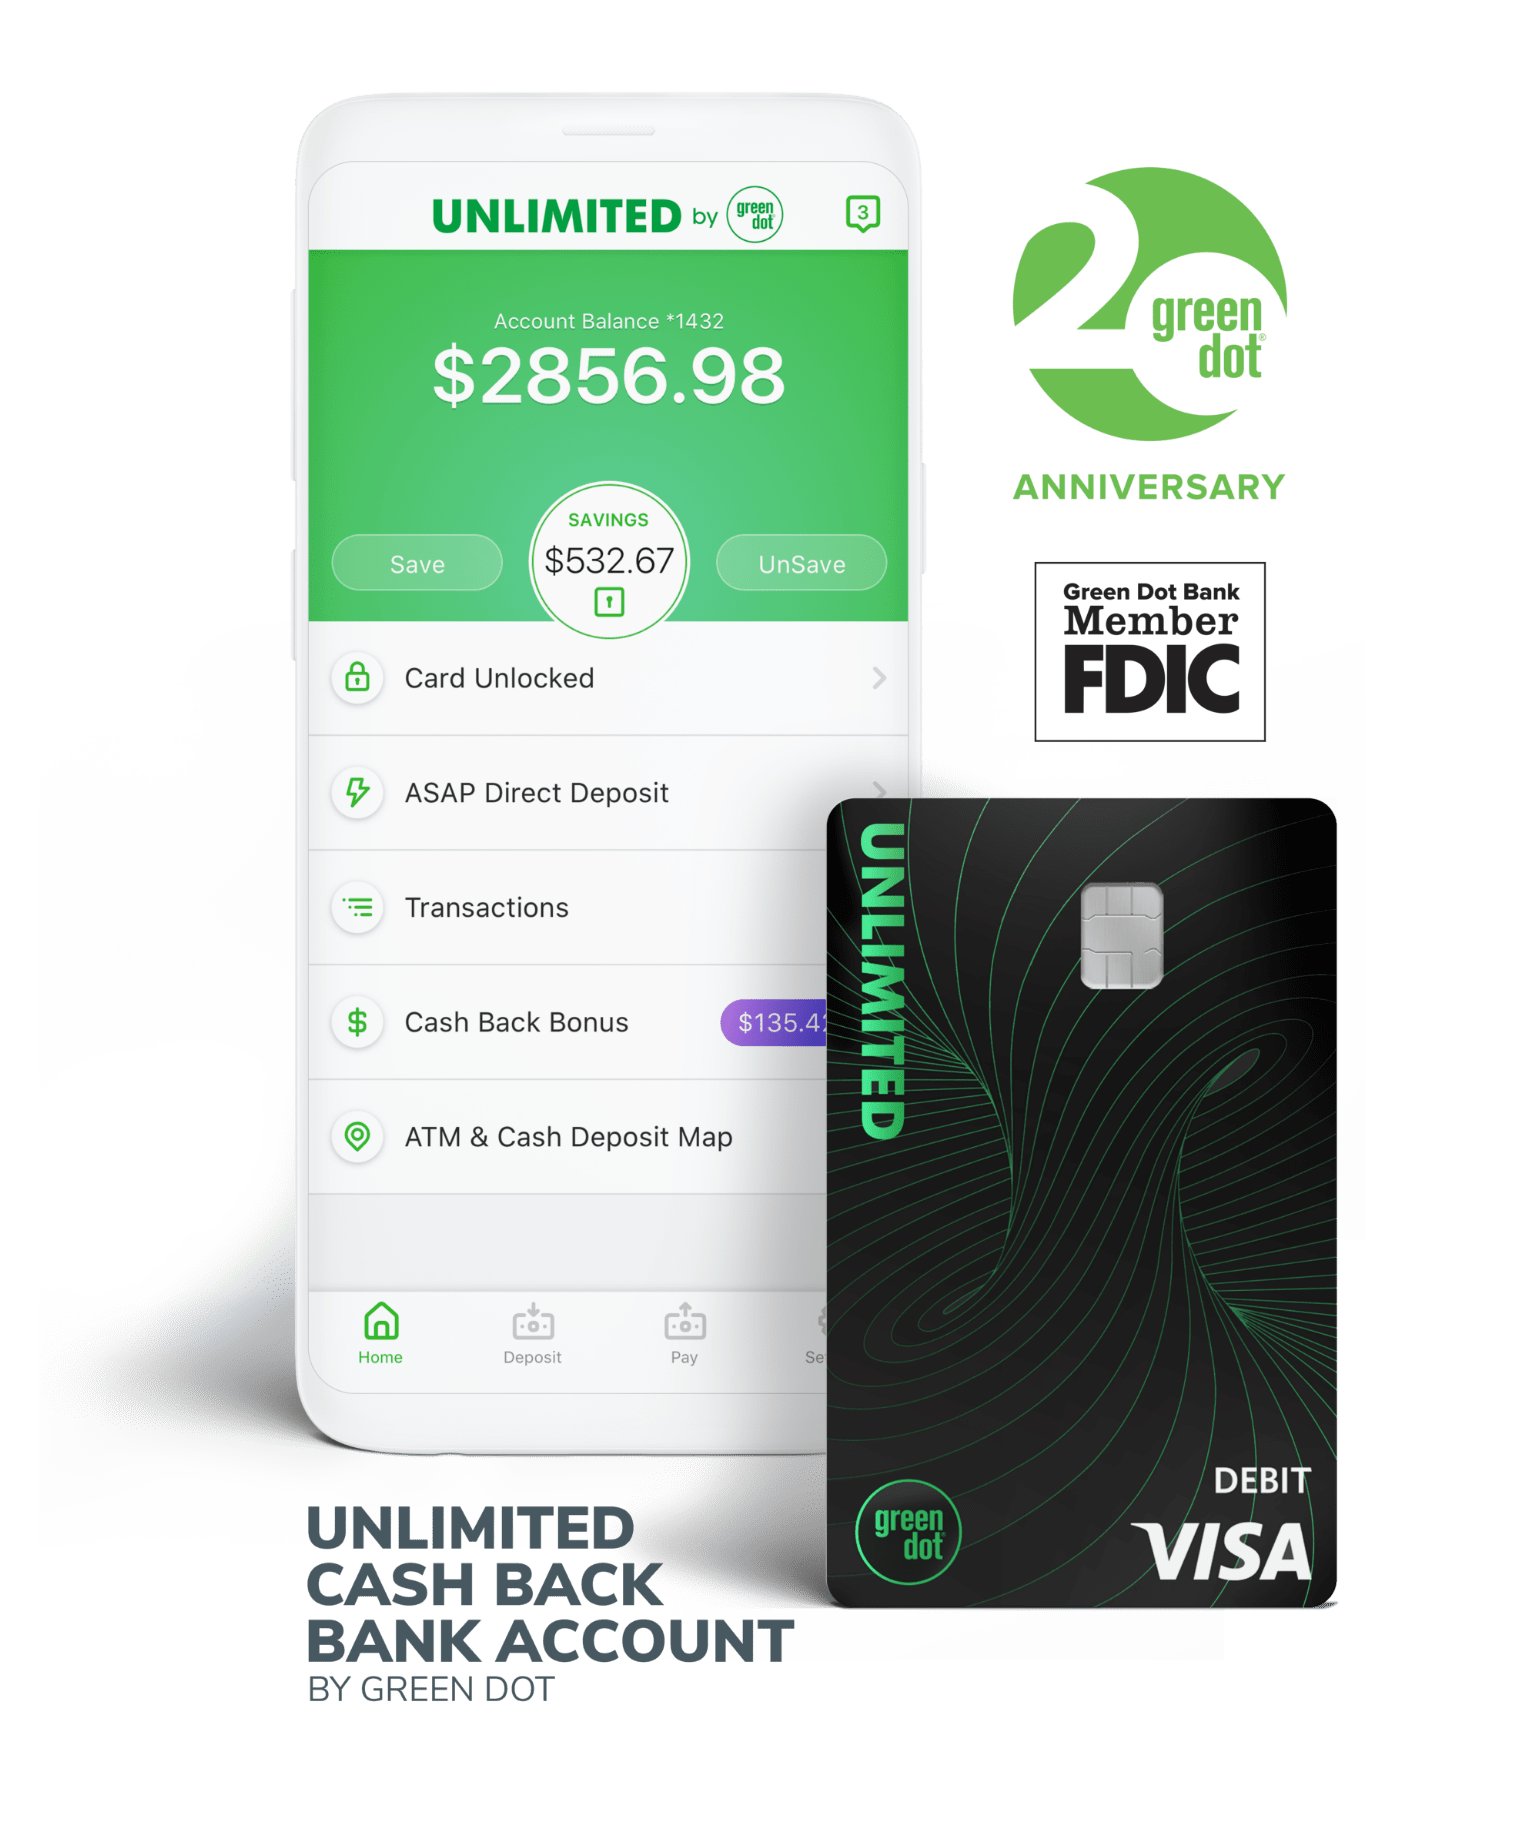 Green Dot - Unlimited Cash Back Mobile Account & Debit Cards